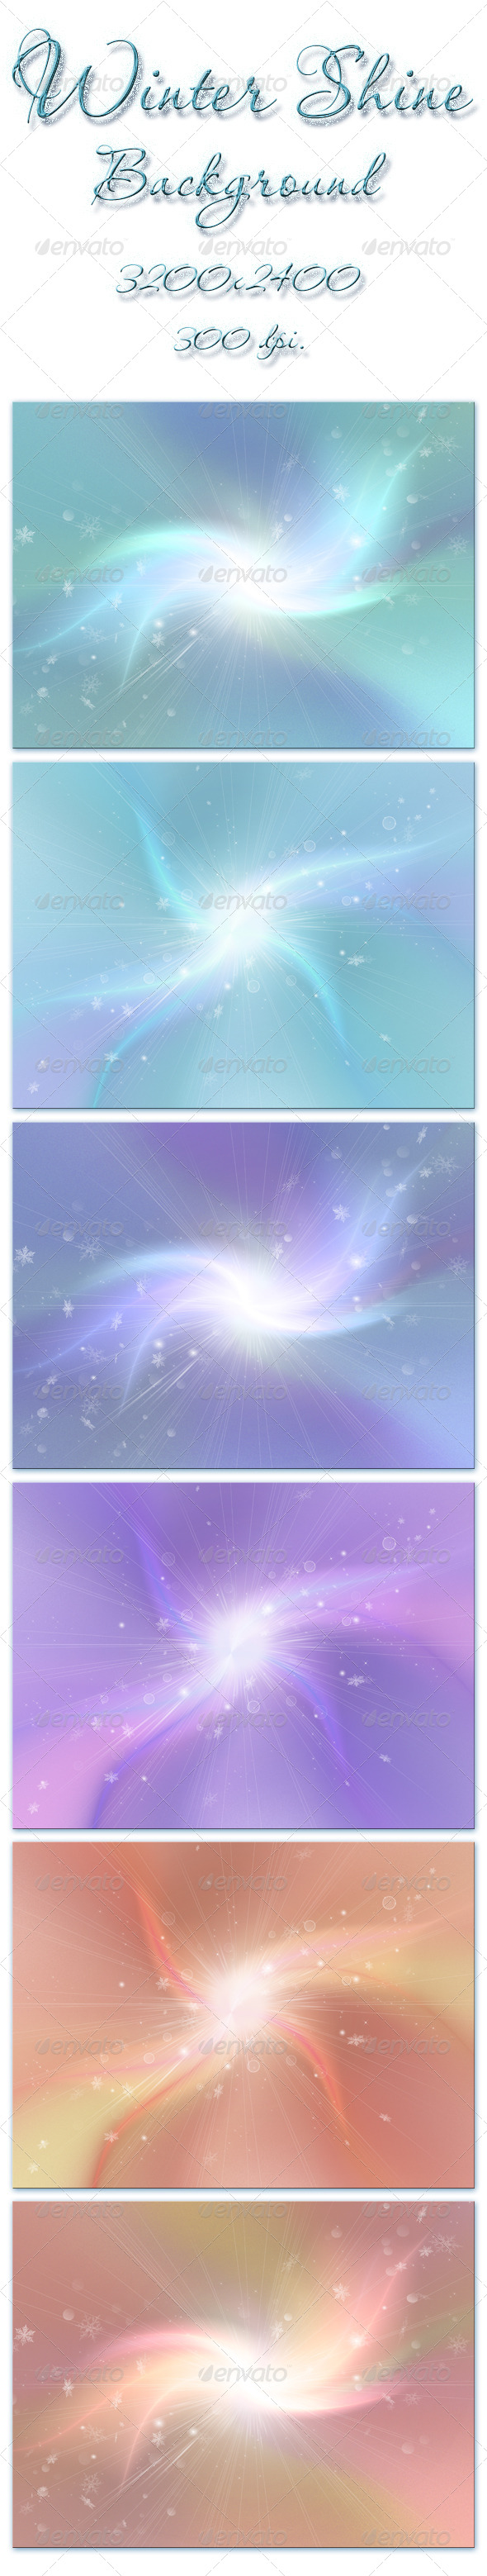 Winter Shine - Abstract Backgrounds